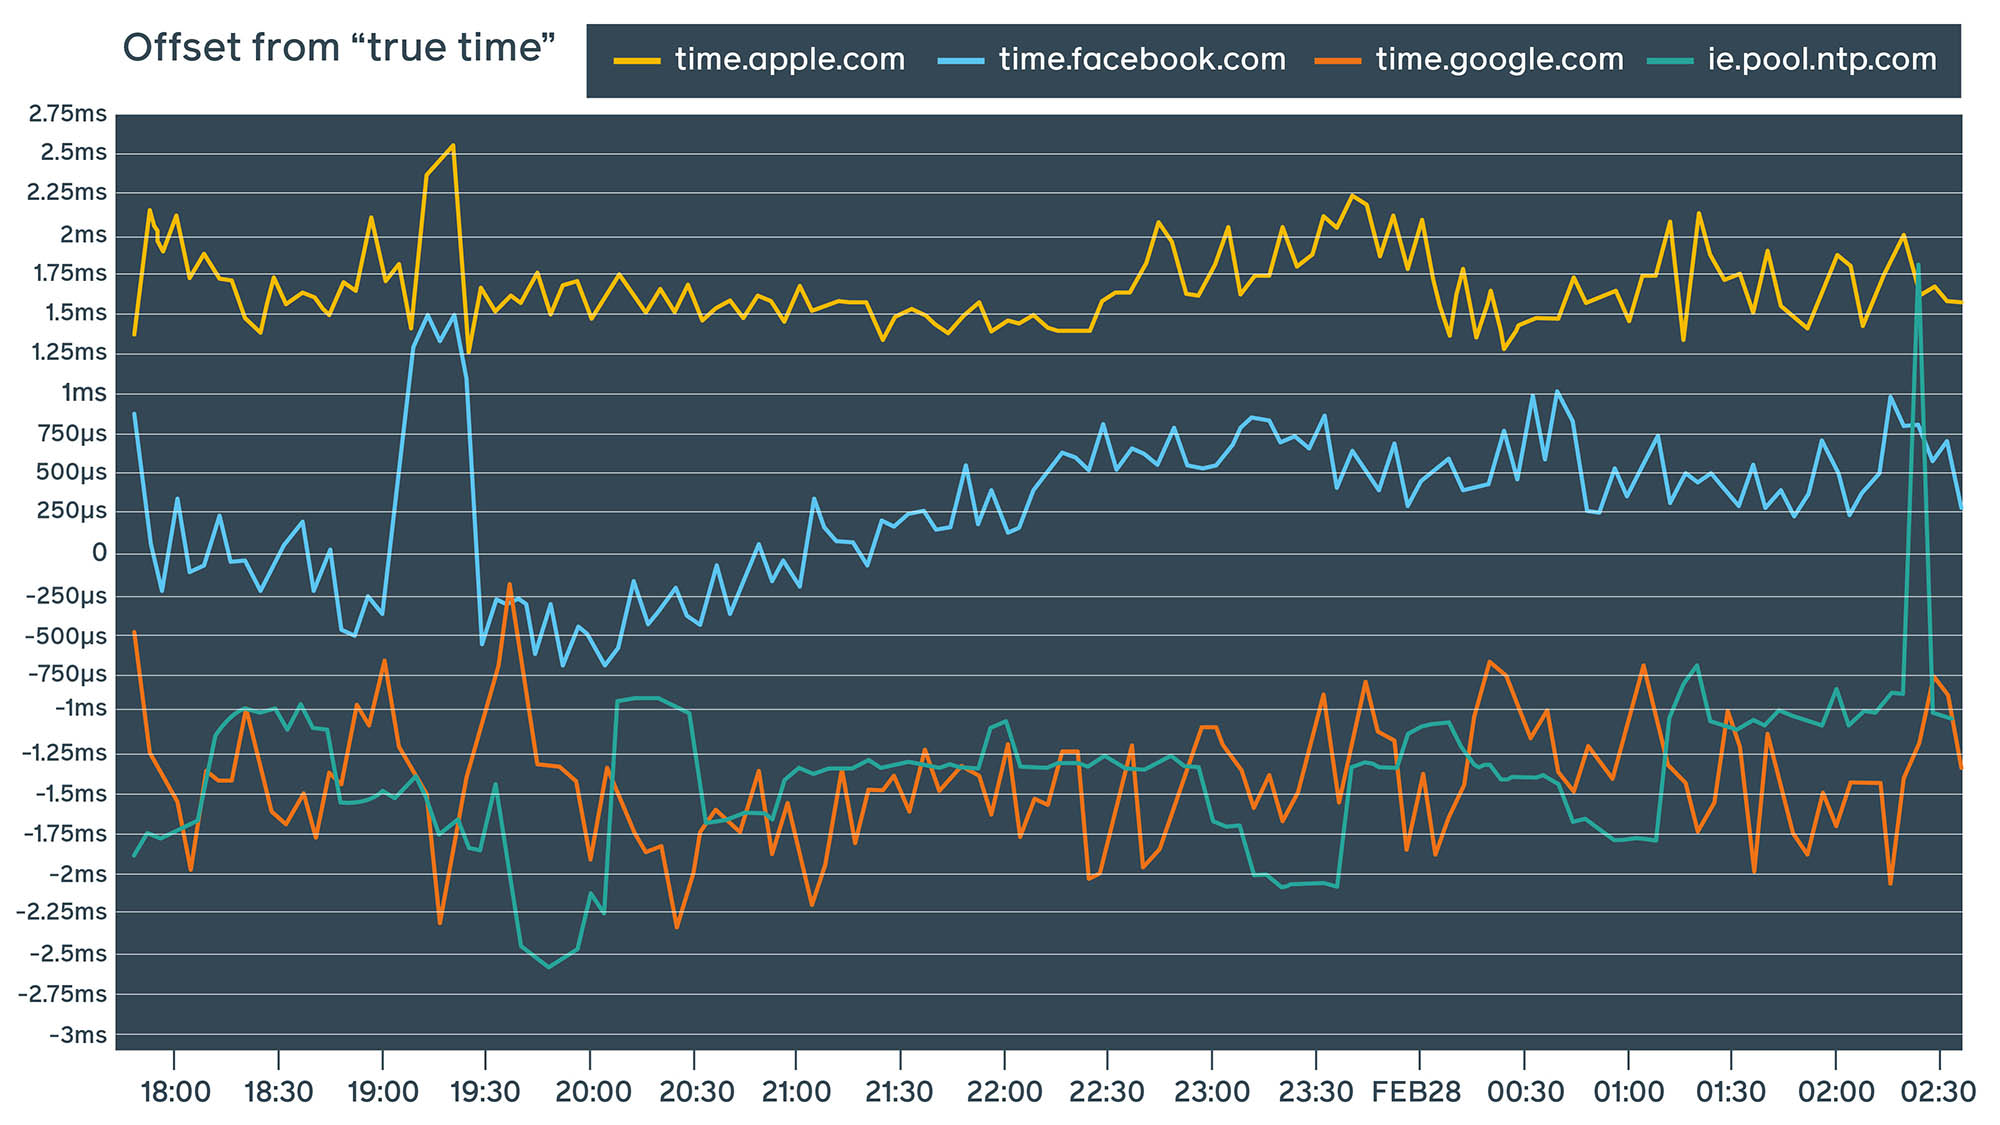 Facebook public NTP service compared to other well-known public NTP service providers